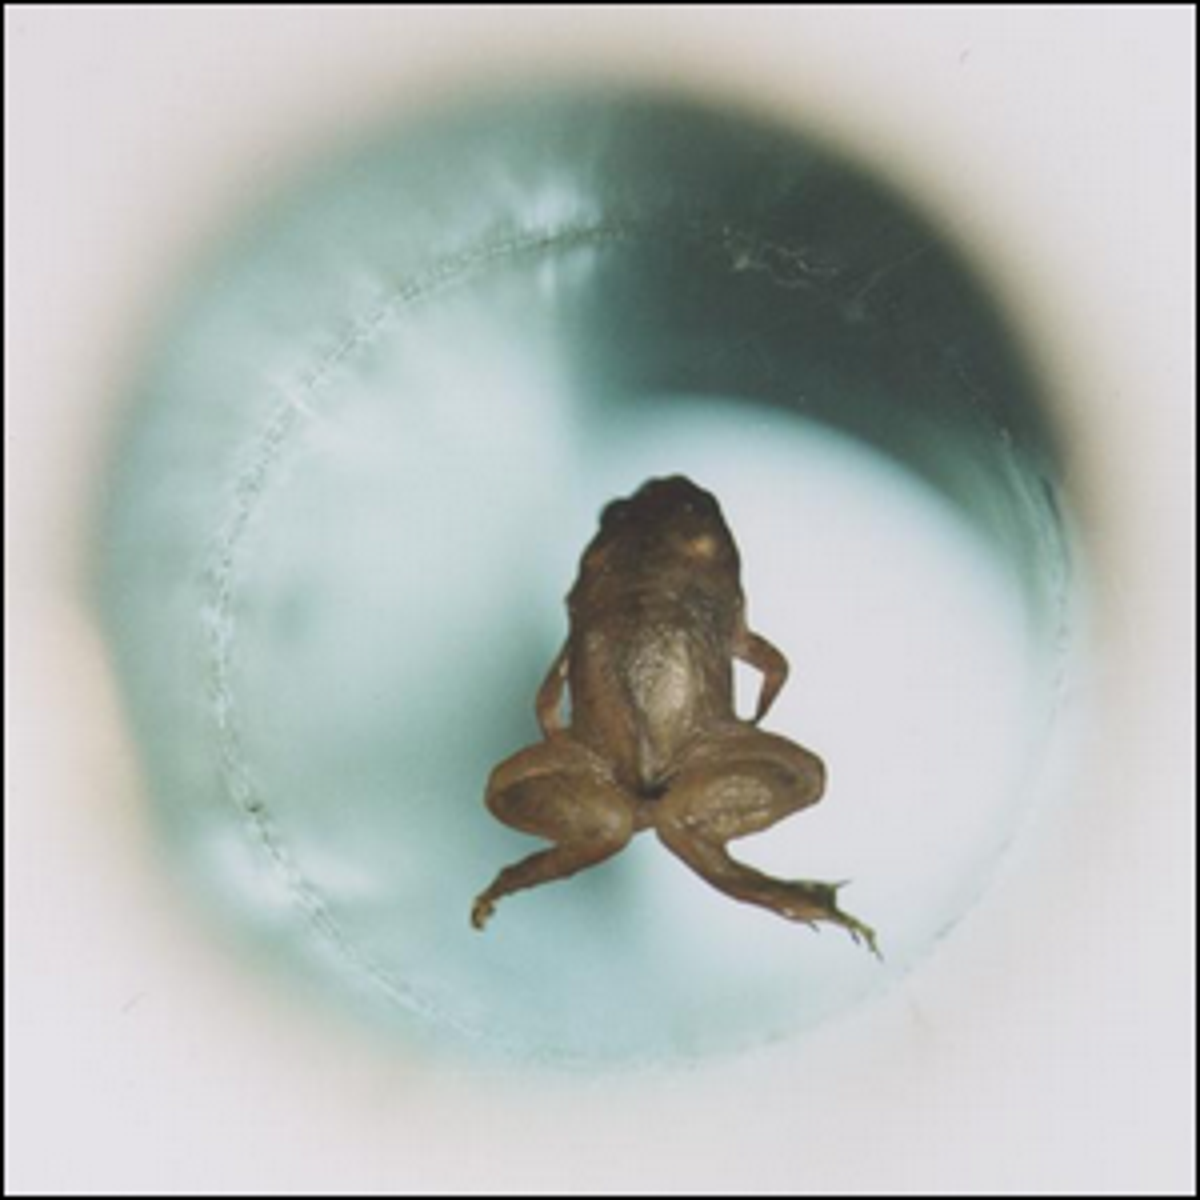 A live frog levitating inside the vertical bore of a Bitter solenoid in a magnetic field.